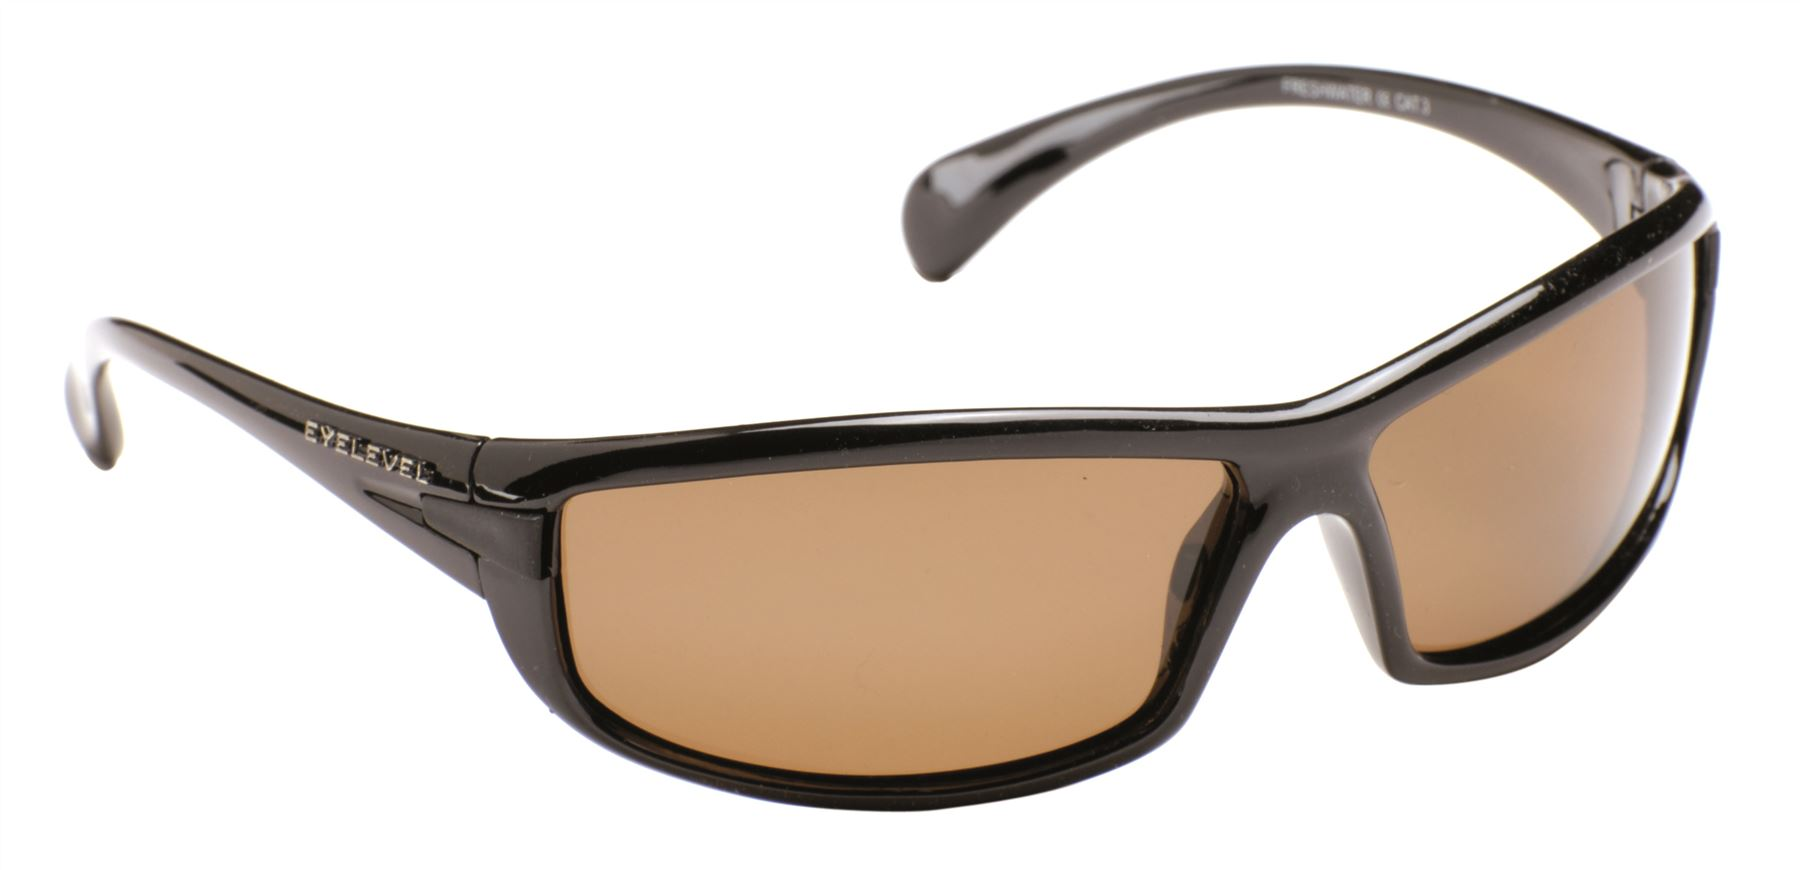 Freshwater Sunglasses - Brown Lens